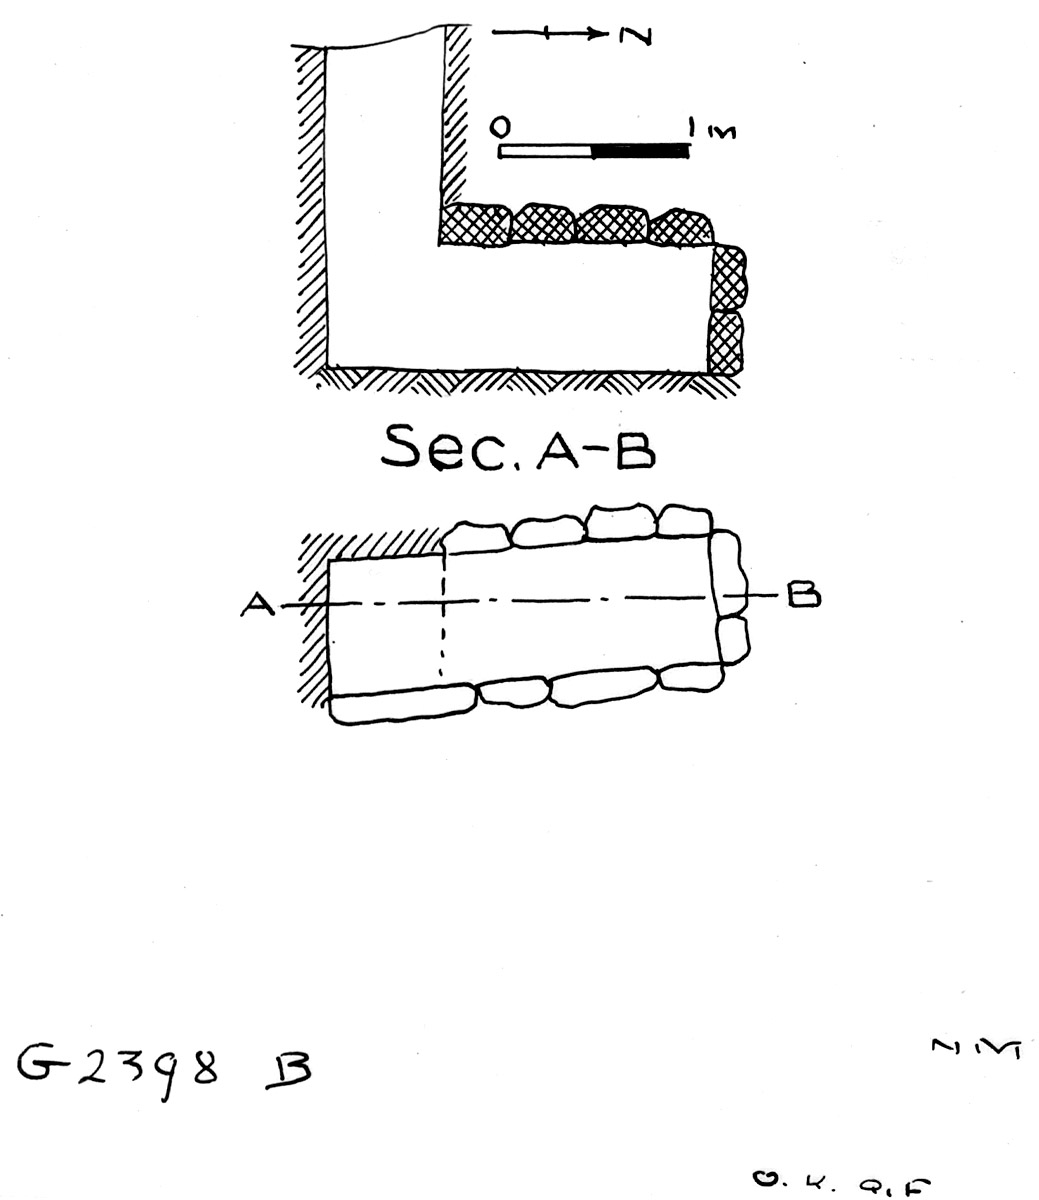 Maps and plans: G 2398, Shaft B